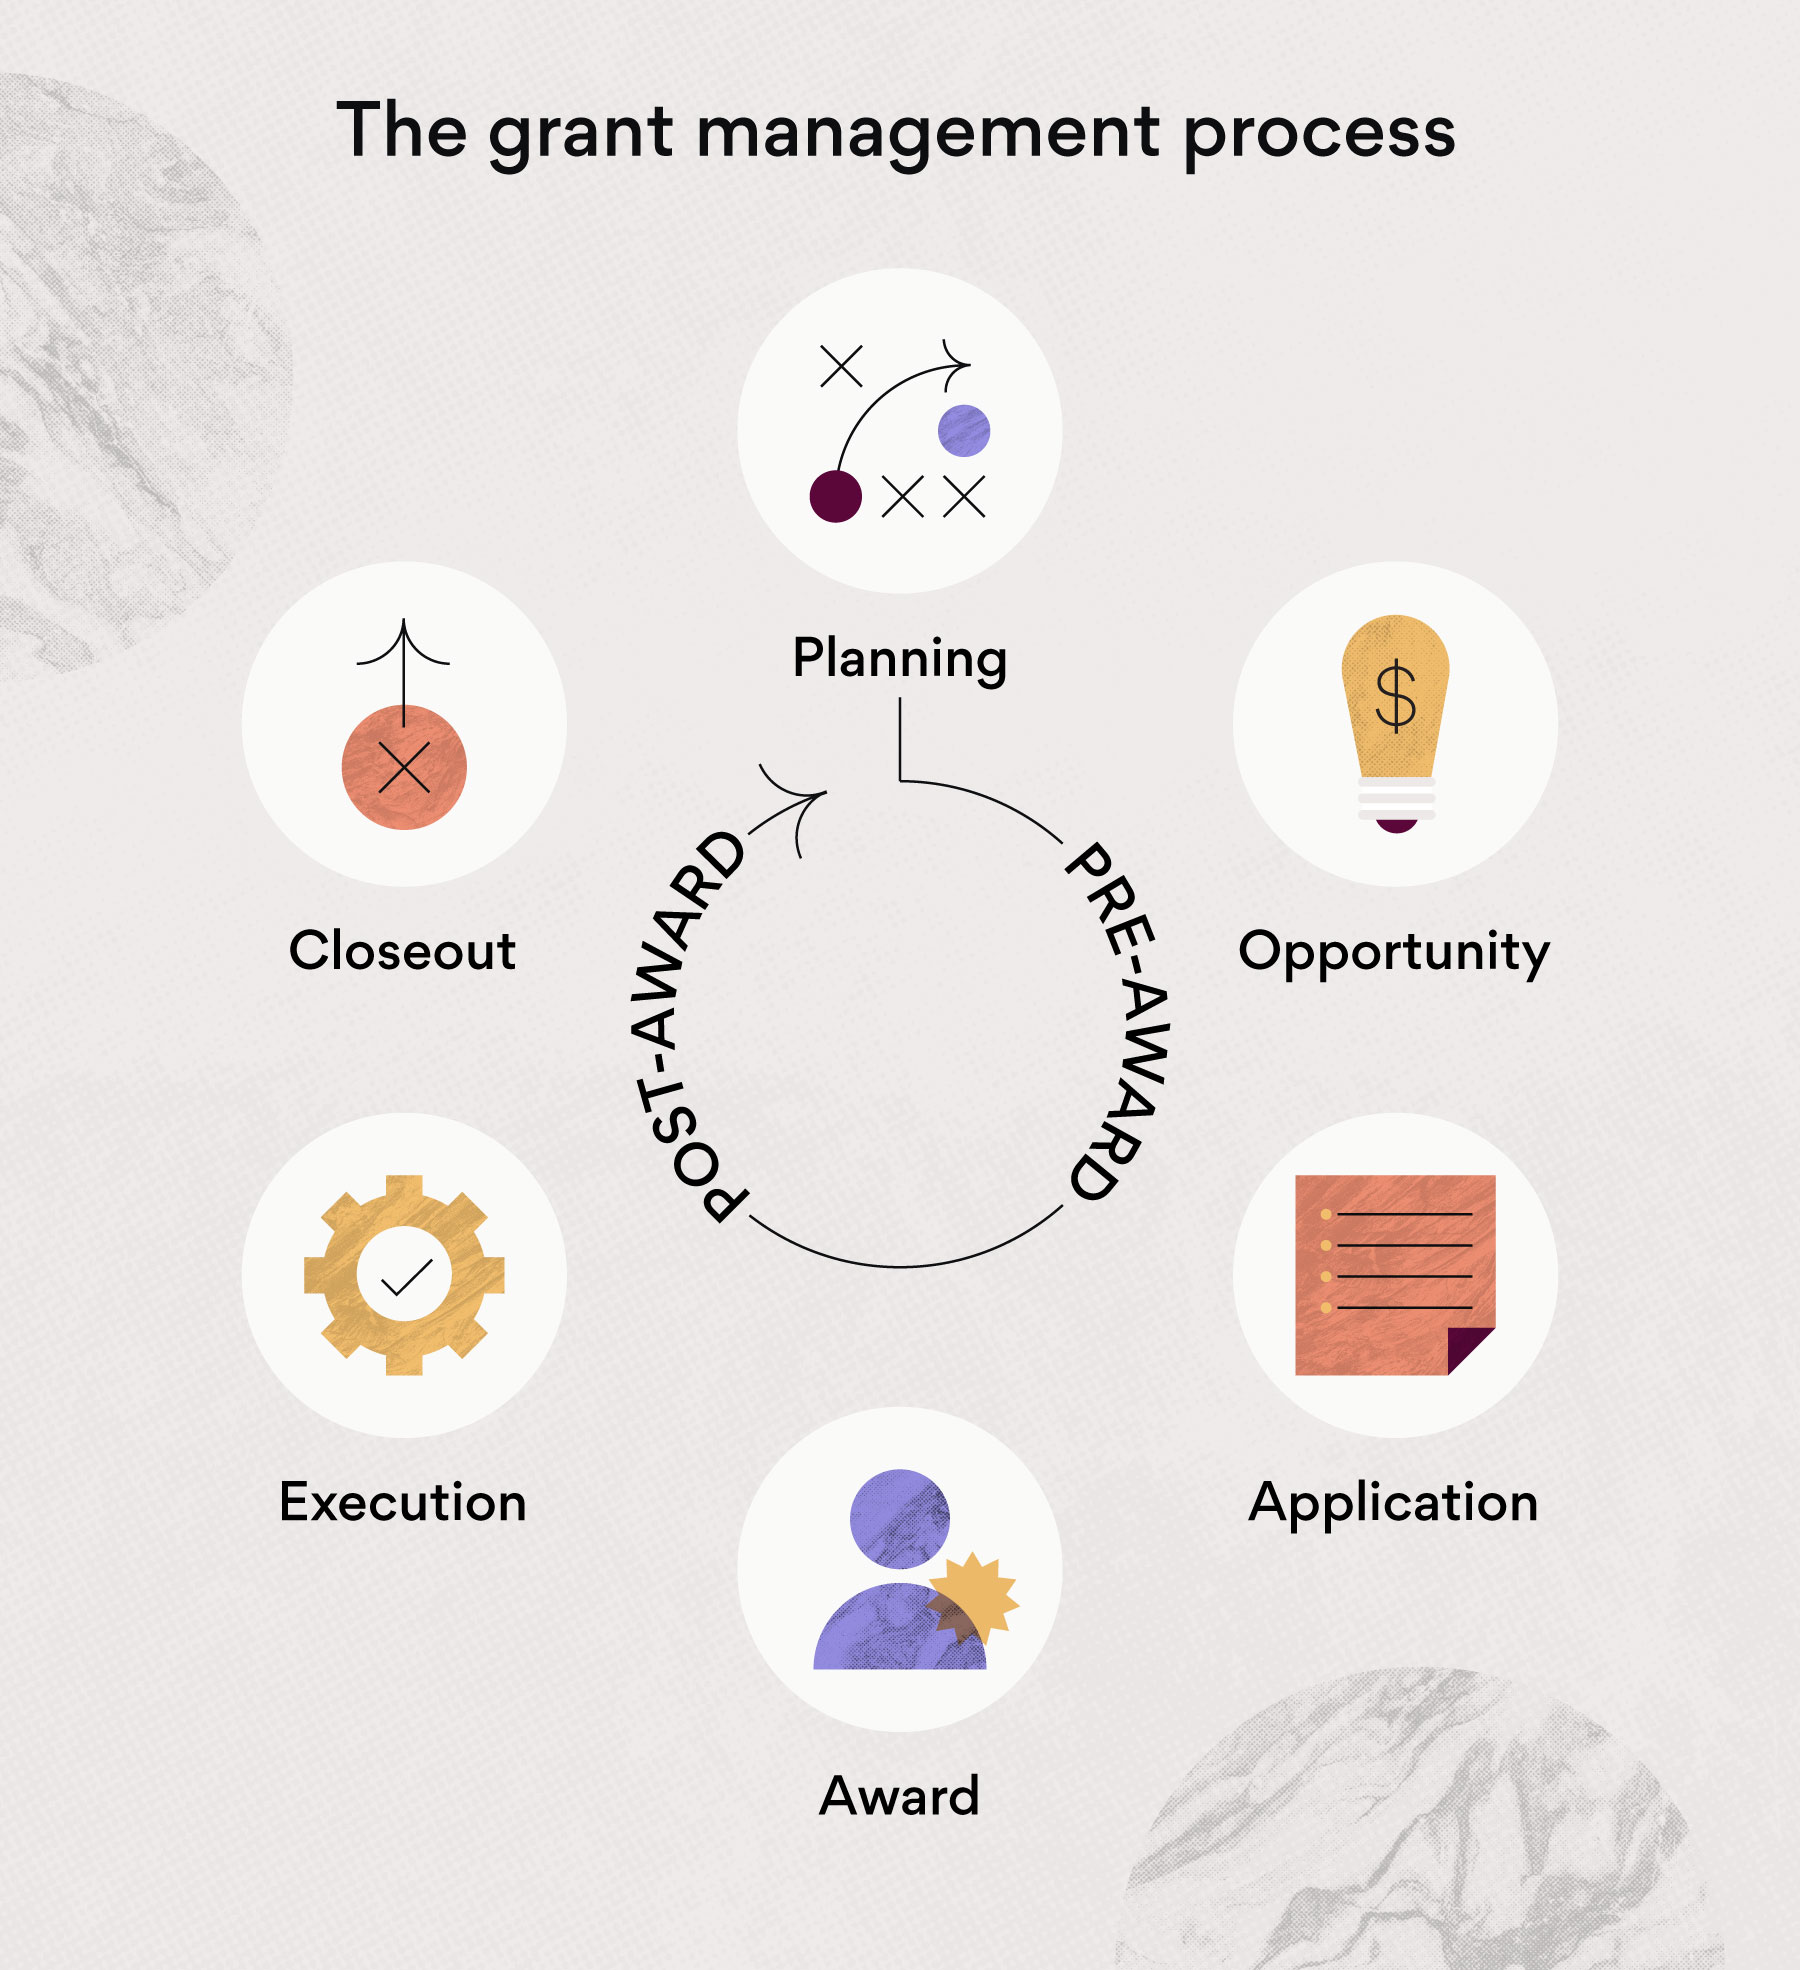 The grant management process